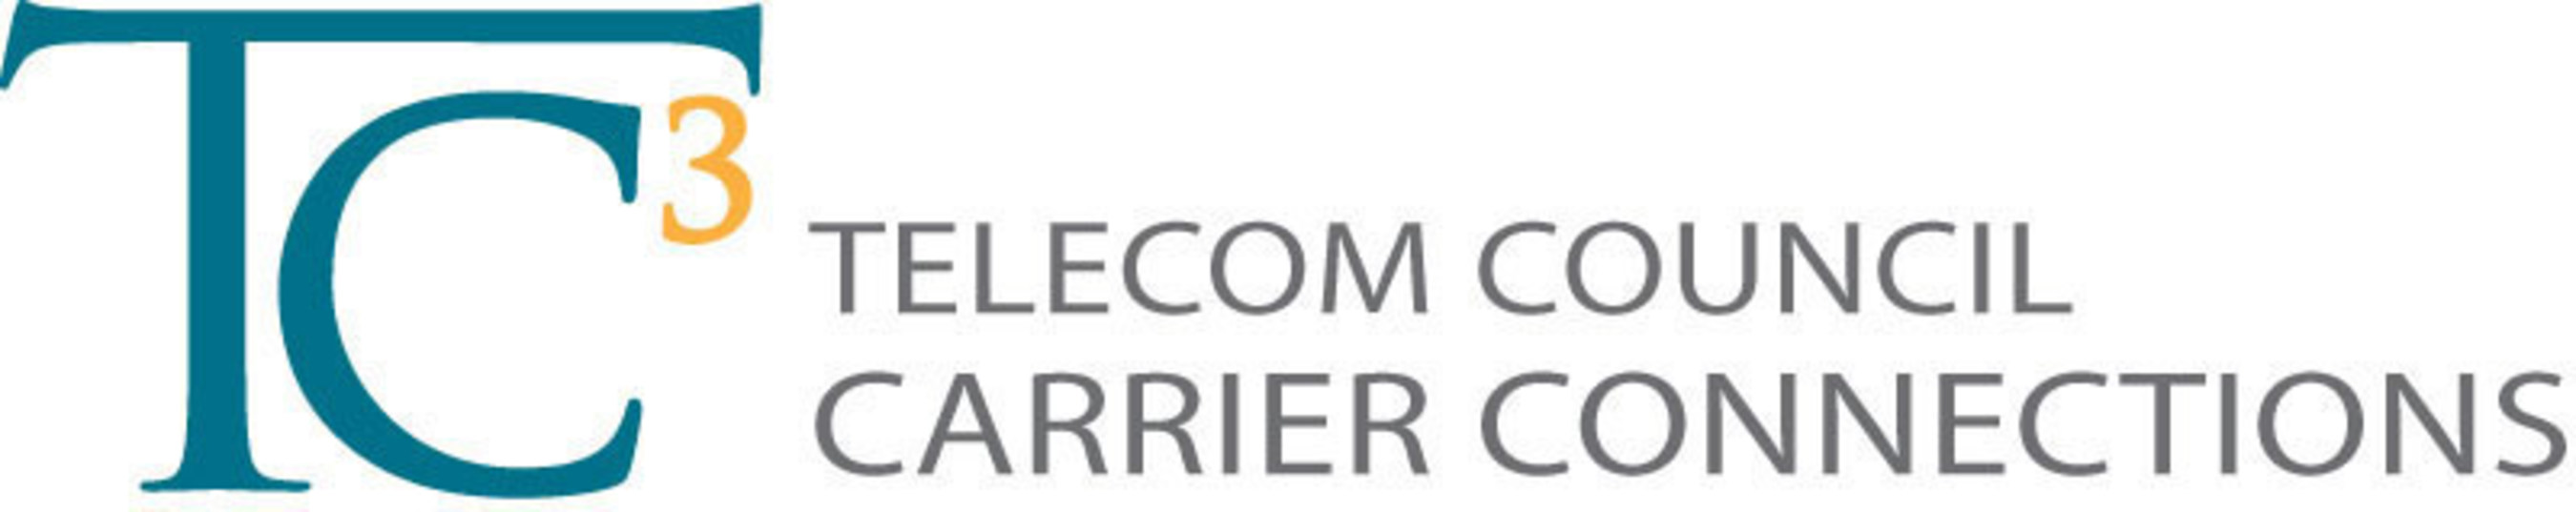 The Telecom Council of Silicon Valley is hosting TC3 (Telecom Council Carrier Connections), September 30 - October 1 at the Computer History Museum in Mountain View, Calif.